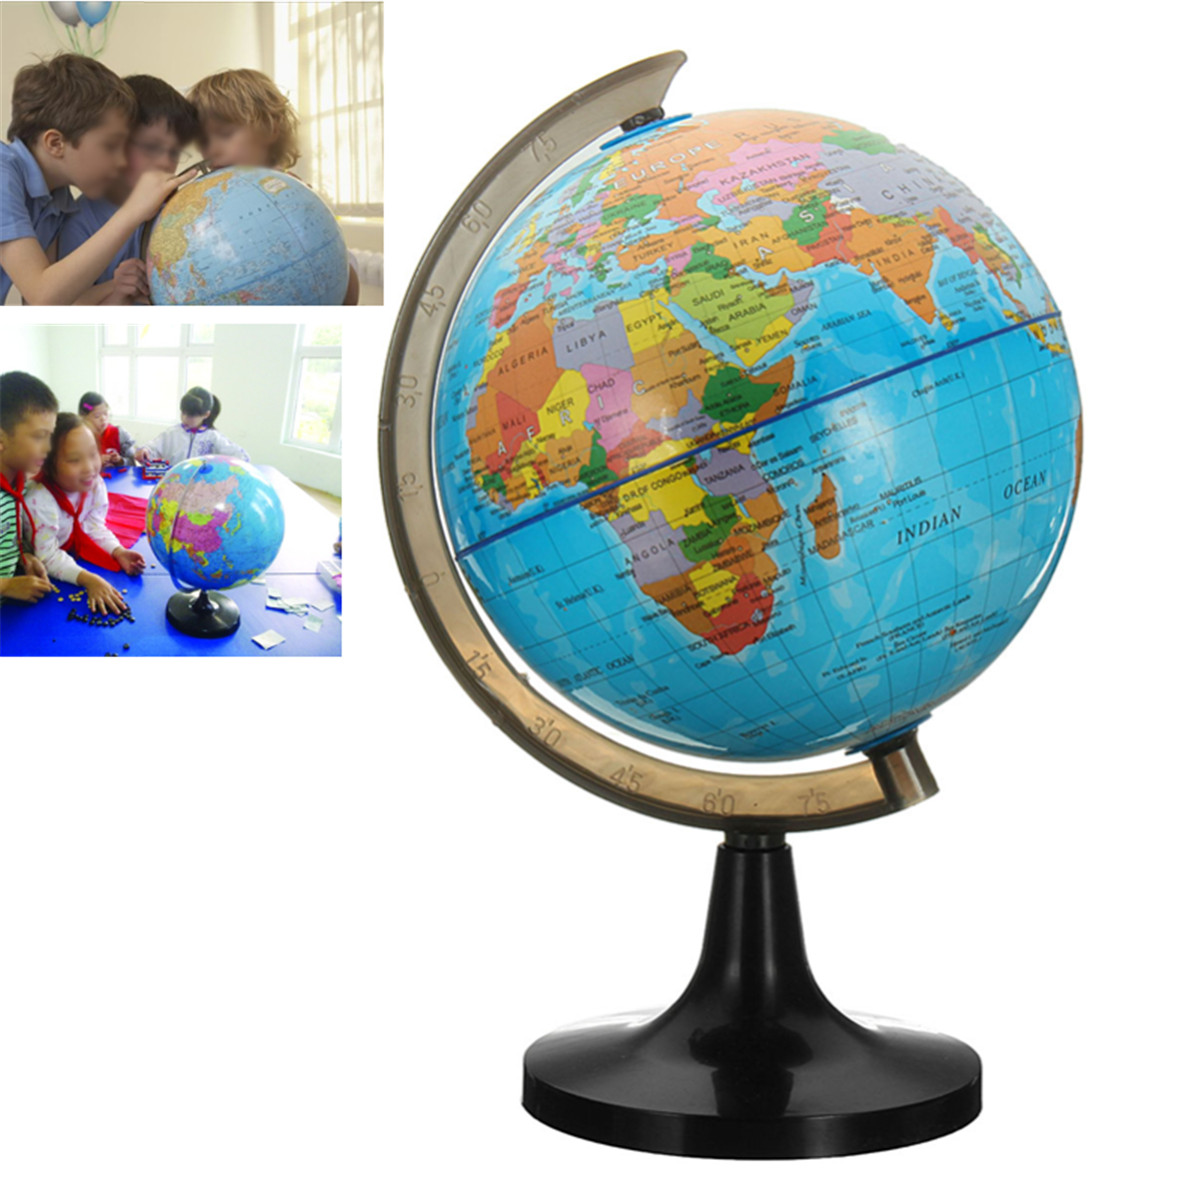 14 cm Globe World Earth Tellurion Globe World Map With Stand Geography Educational Toy Home Office Ornament Kids Gift diy scratch globe 3d stereo assembly globe world map travel kid child toy gift